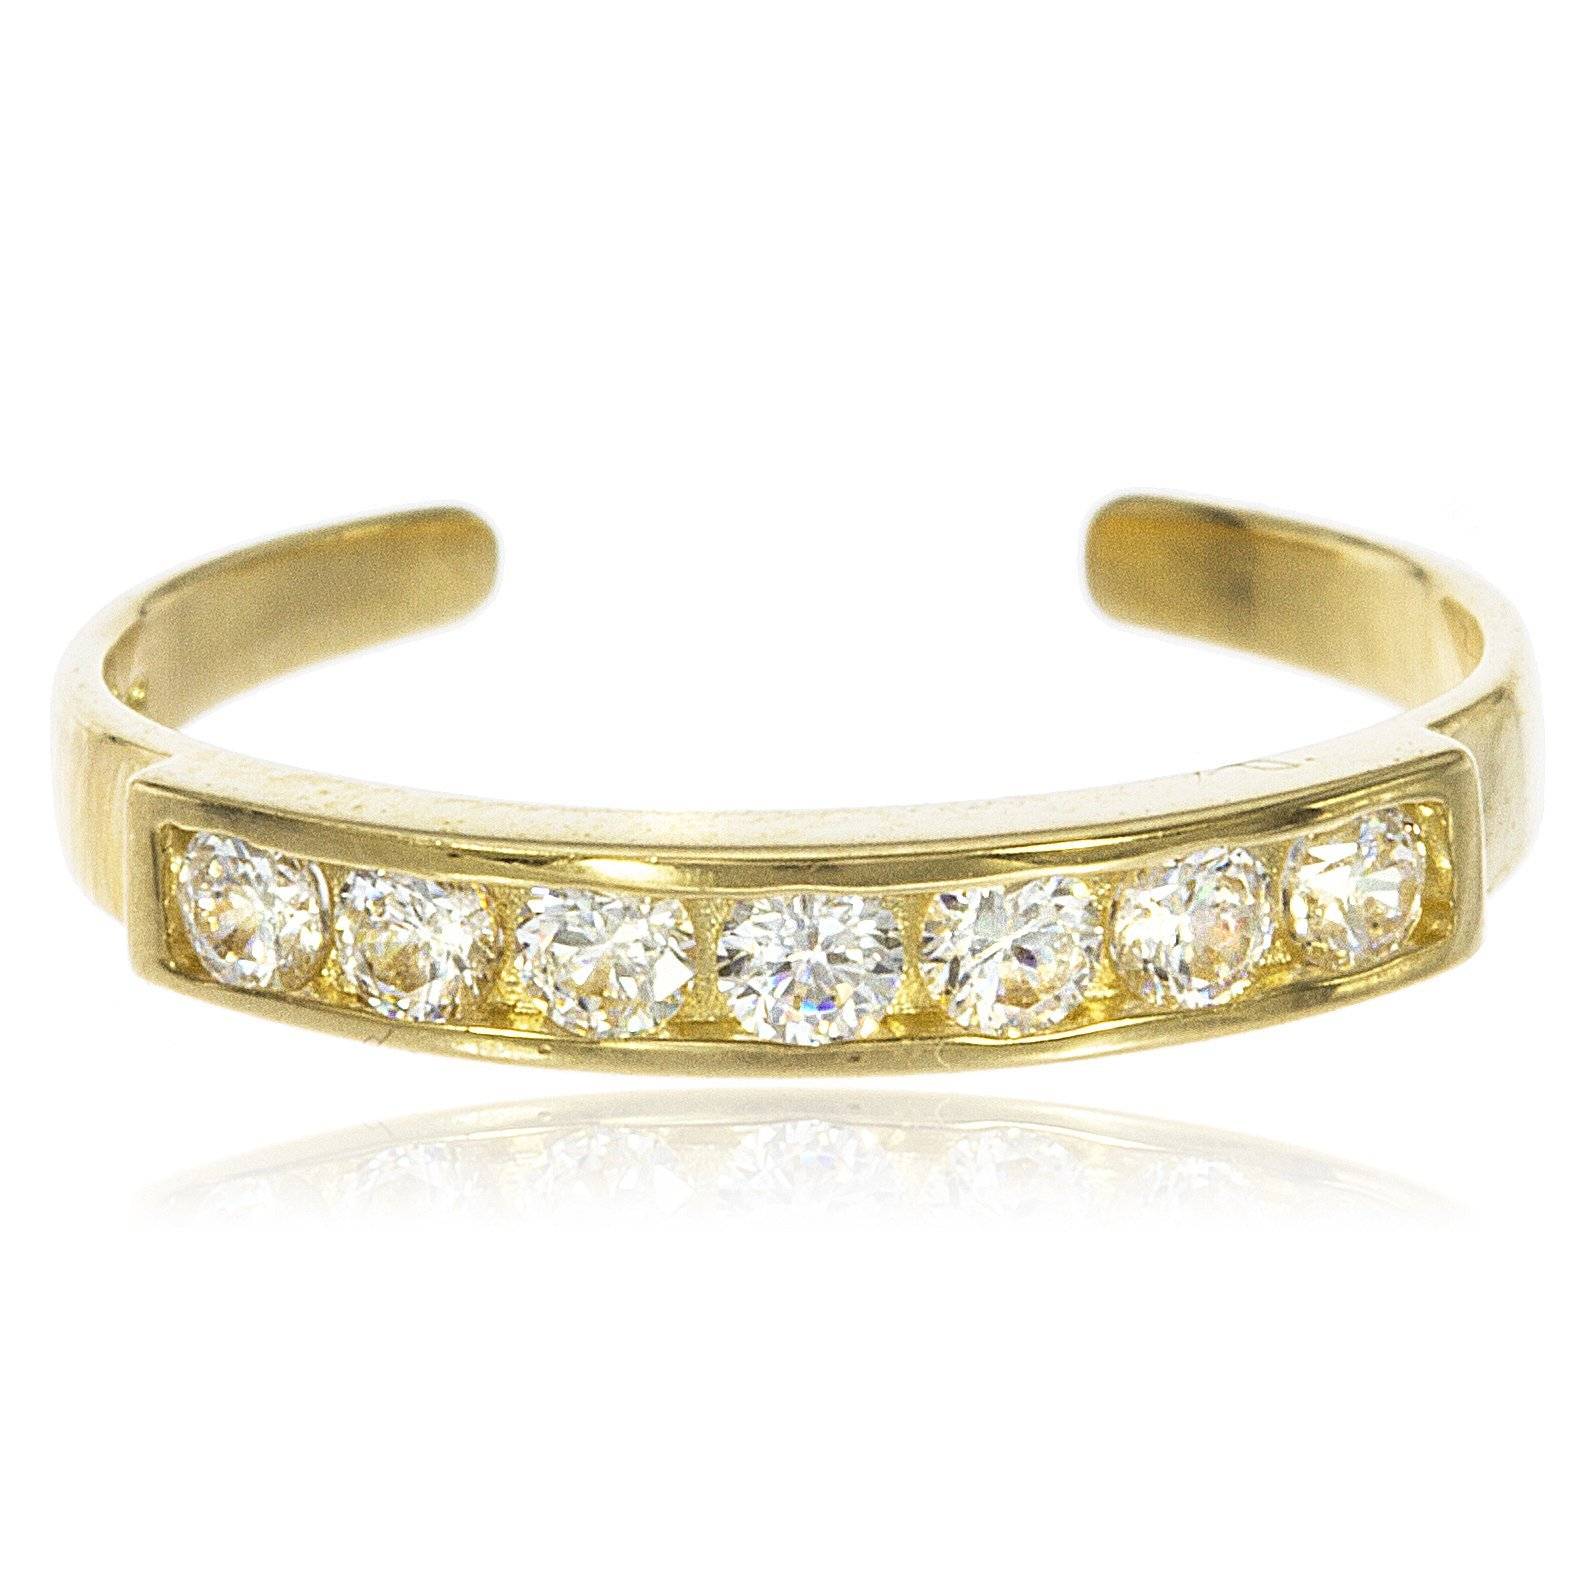 JOTW 10k Yellow Gold Bar with Cubic Zirconia Stones Toe Ring (GO-543) by JOTW